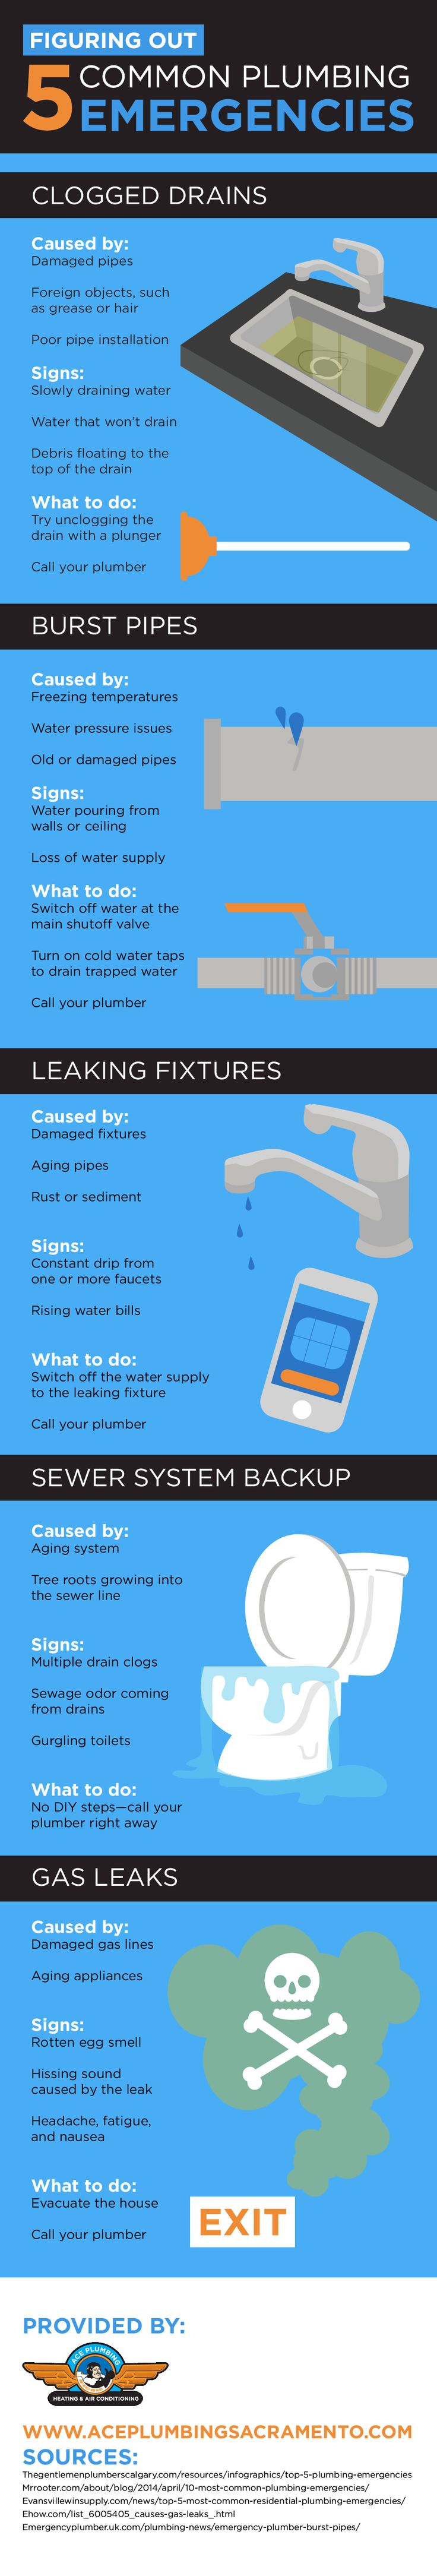 A clogged drain is one of the easier plumbing problems to fix, and you usually just need a quality plunger! Learn about some common plumbing emergencies by reading this infographic.